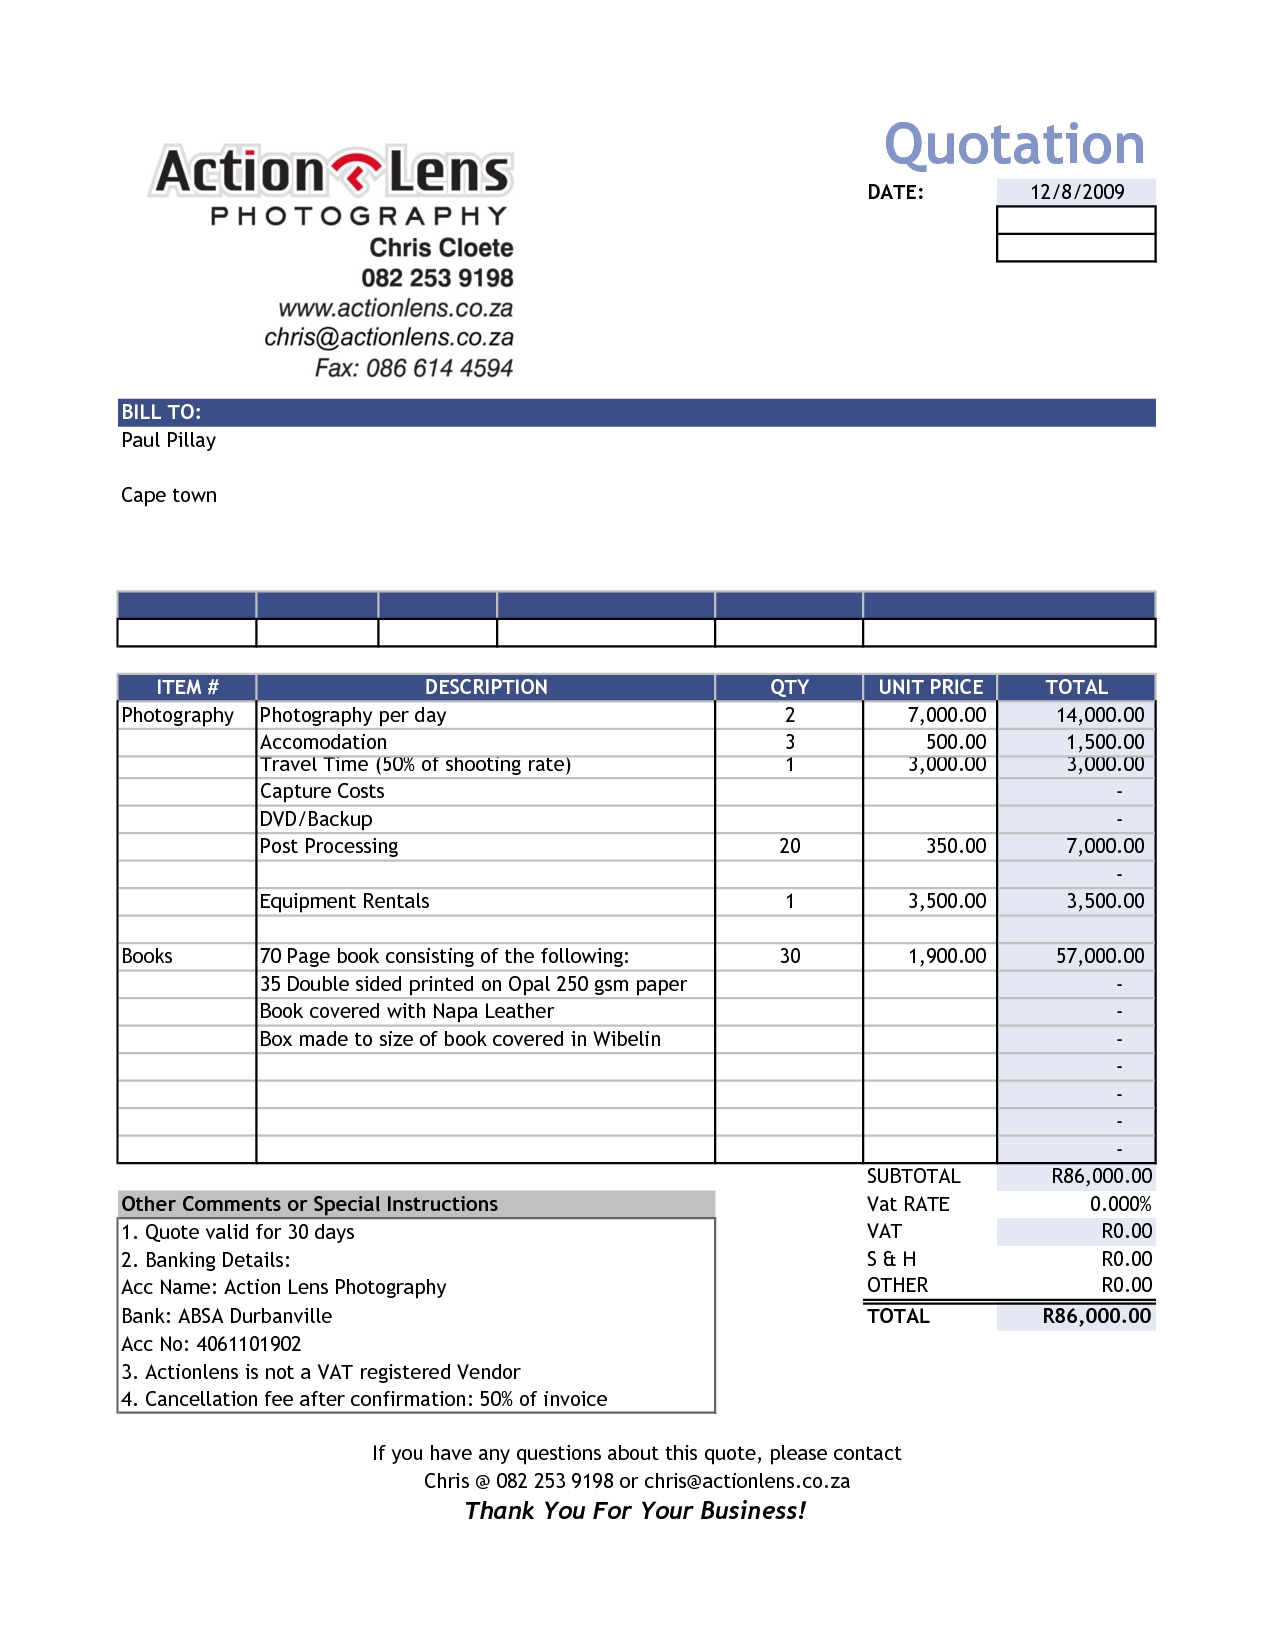 sales invoice format sales invoice template invoice templat sales invoice form free 1275 X 1650